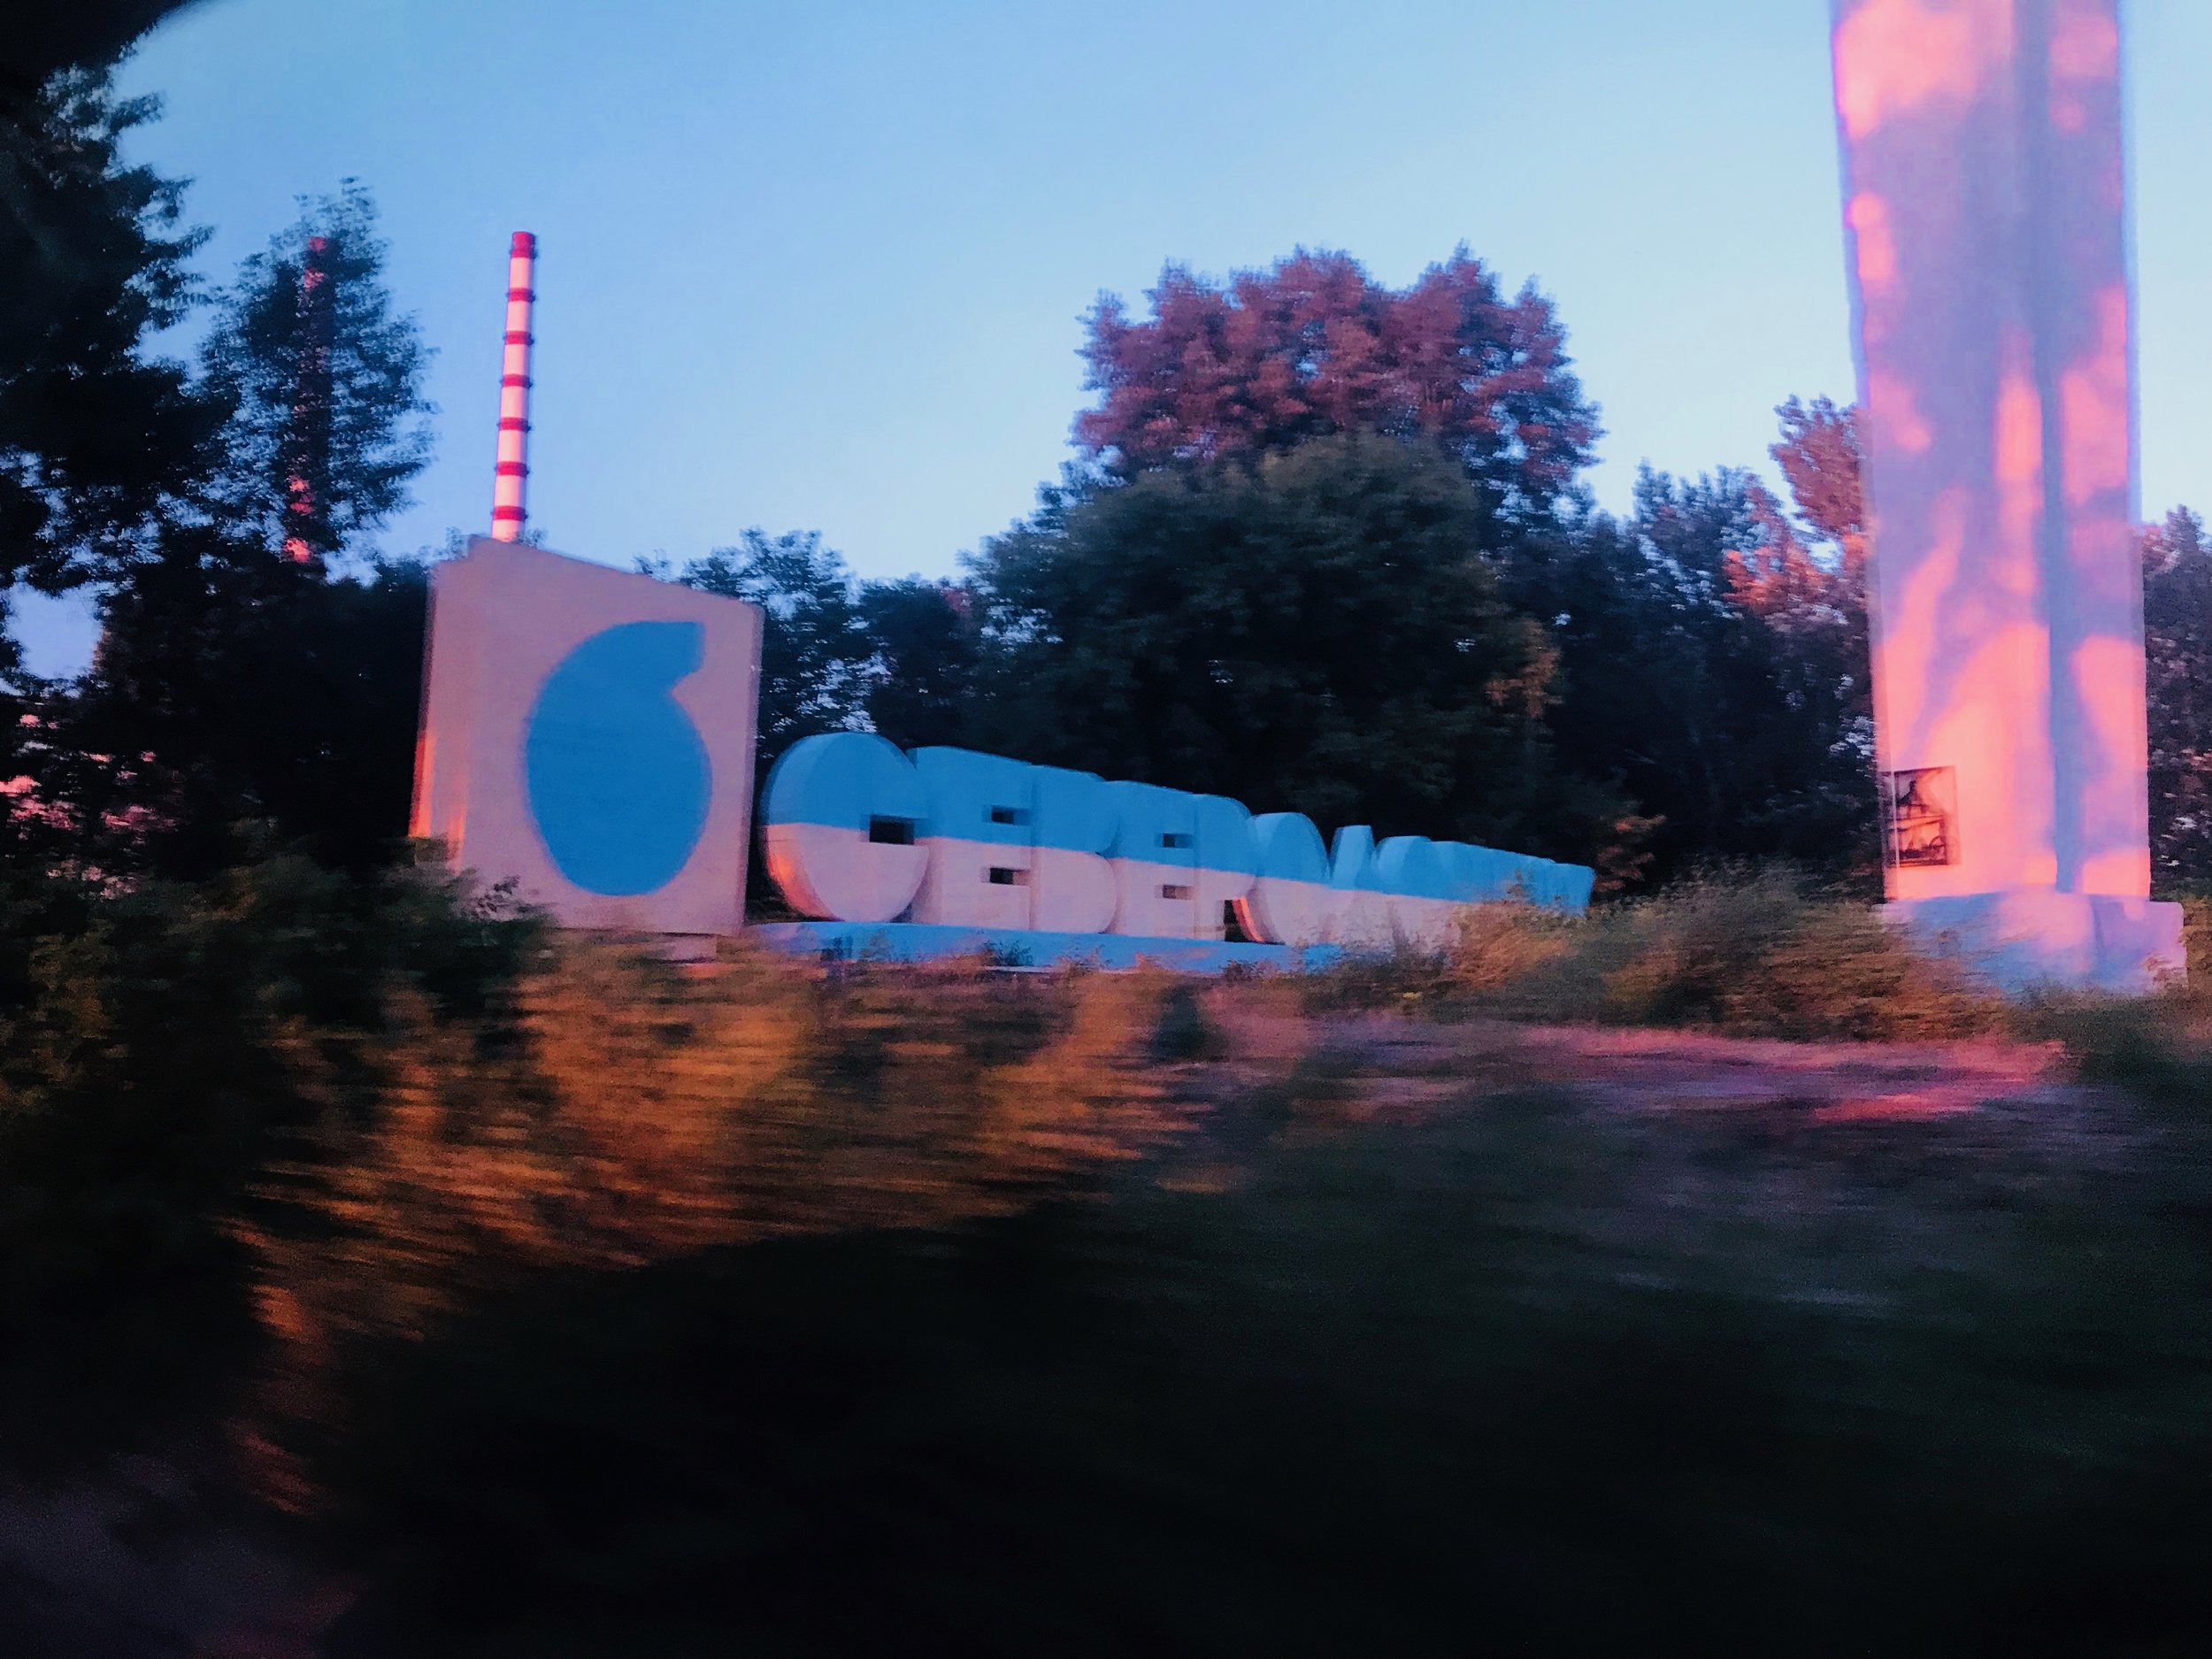 Highway sign at the entrance to the city of Severodonetsk, with AZOT Chemical Factory smokestack